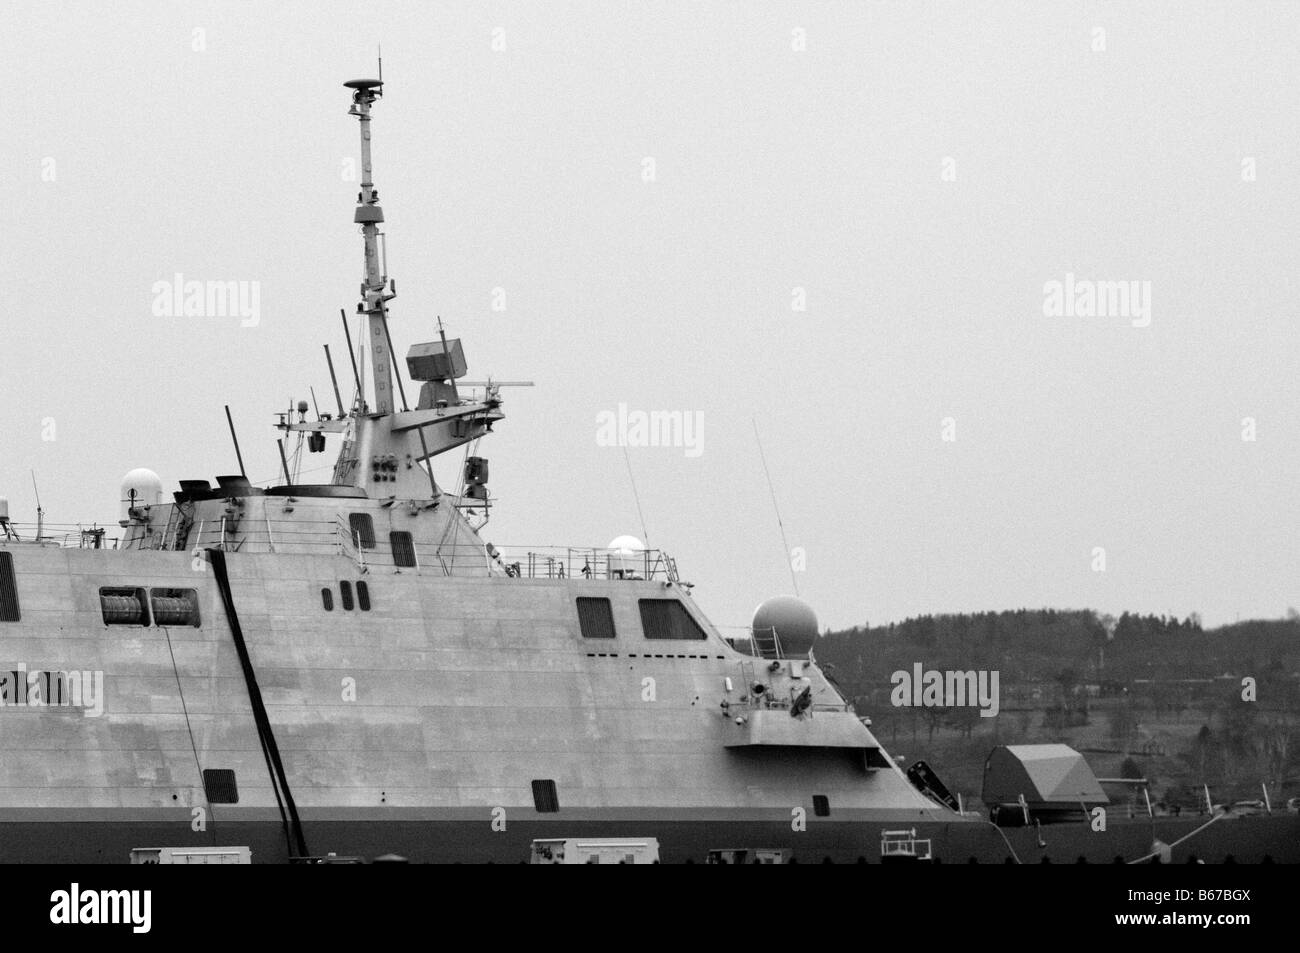 USS Freedom view of the superstructure and main mast, film grain effect. - Stock Image